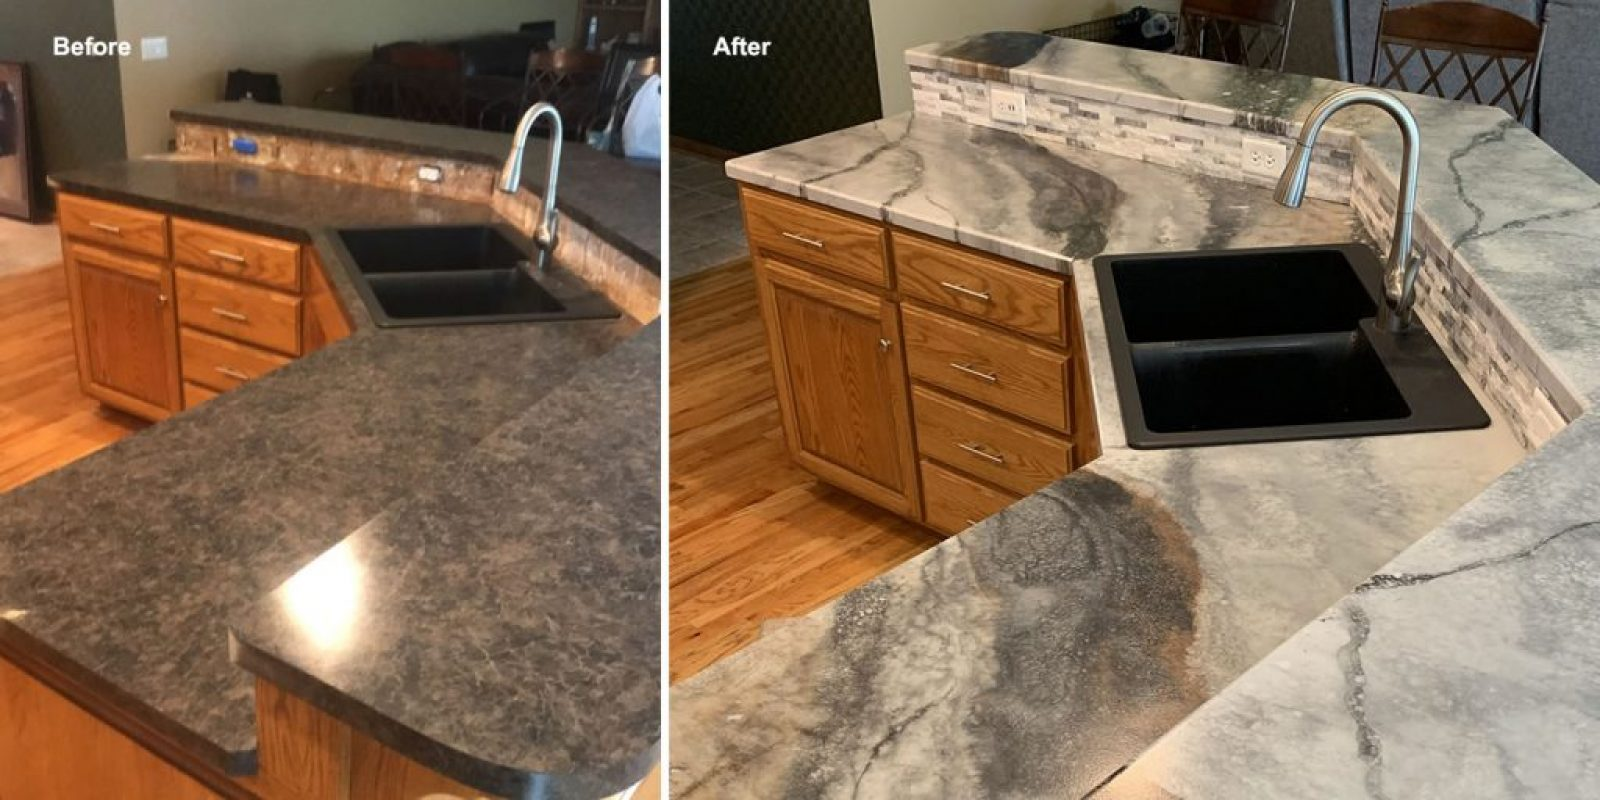 Resurfacing Kitchen Countertop Omaha Bathroom Vanity